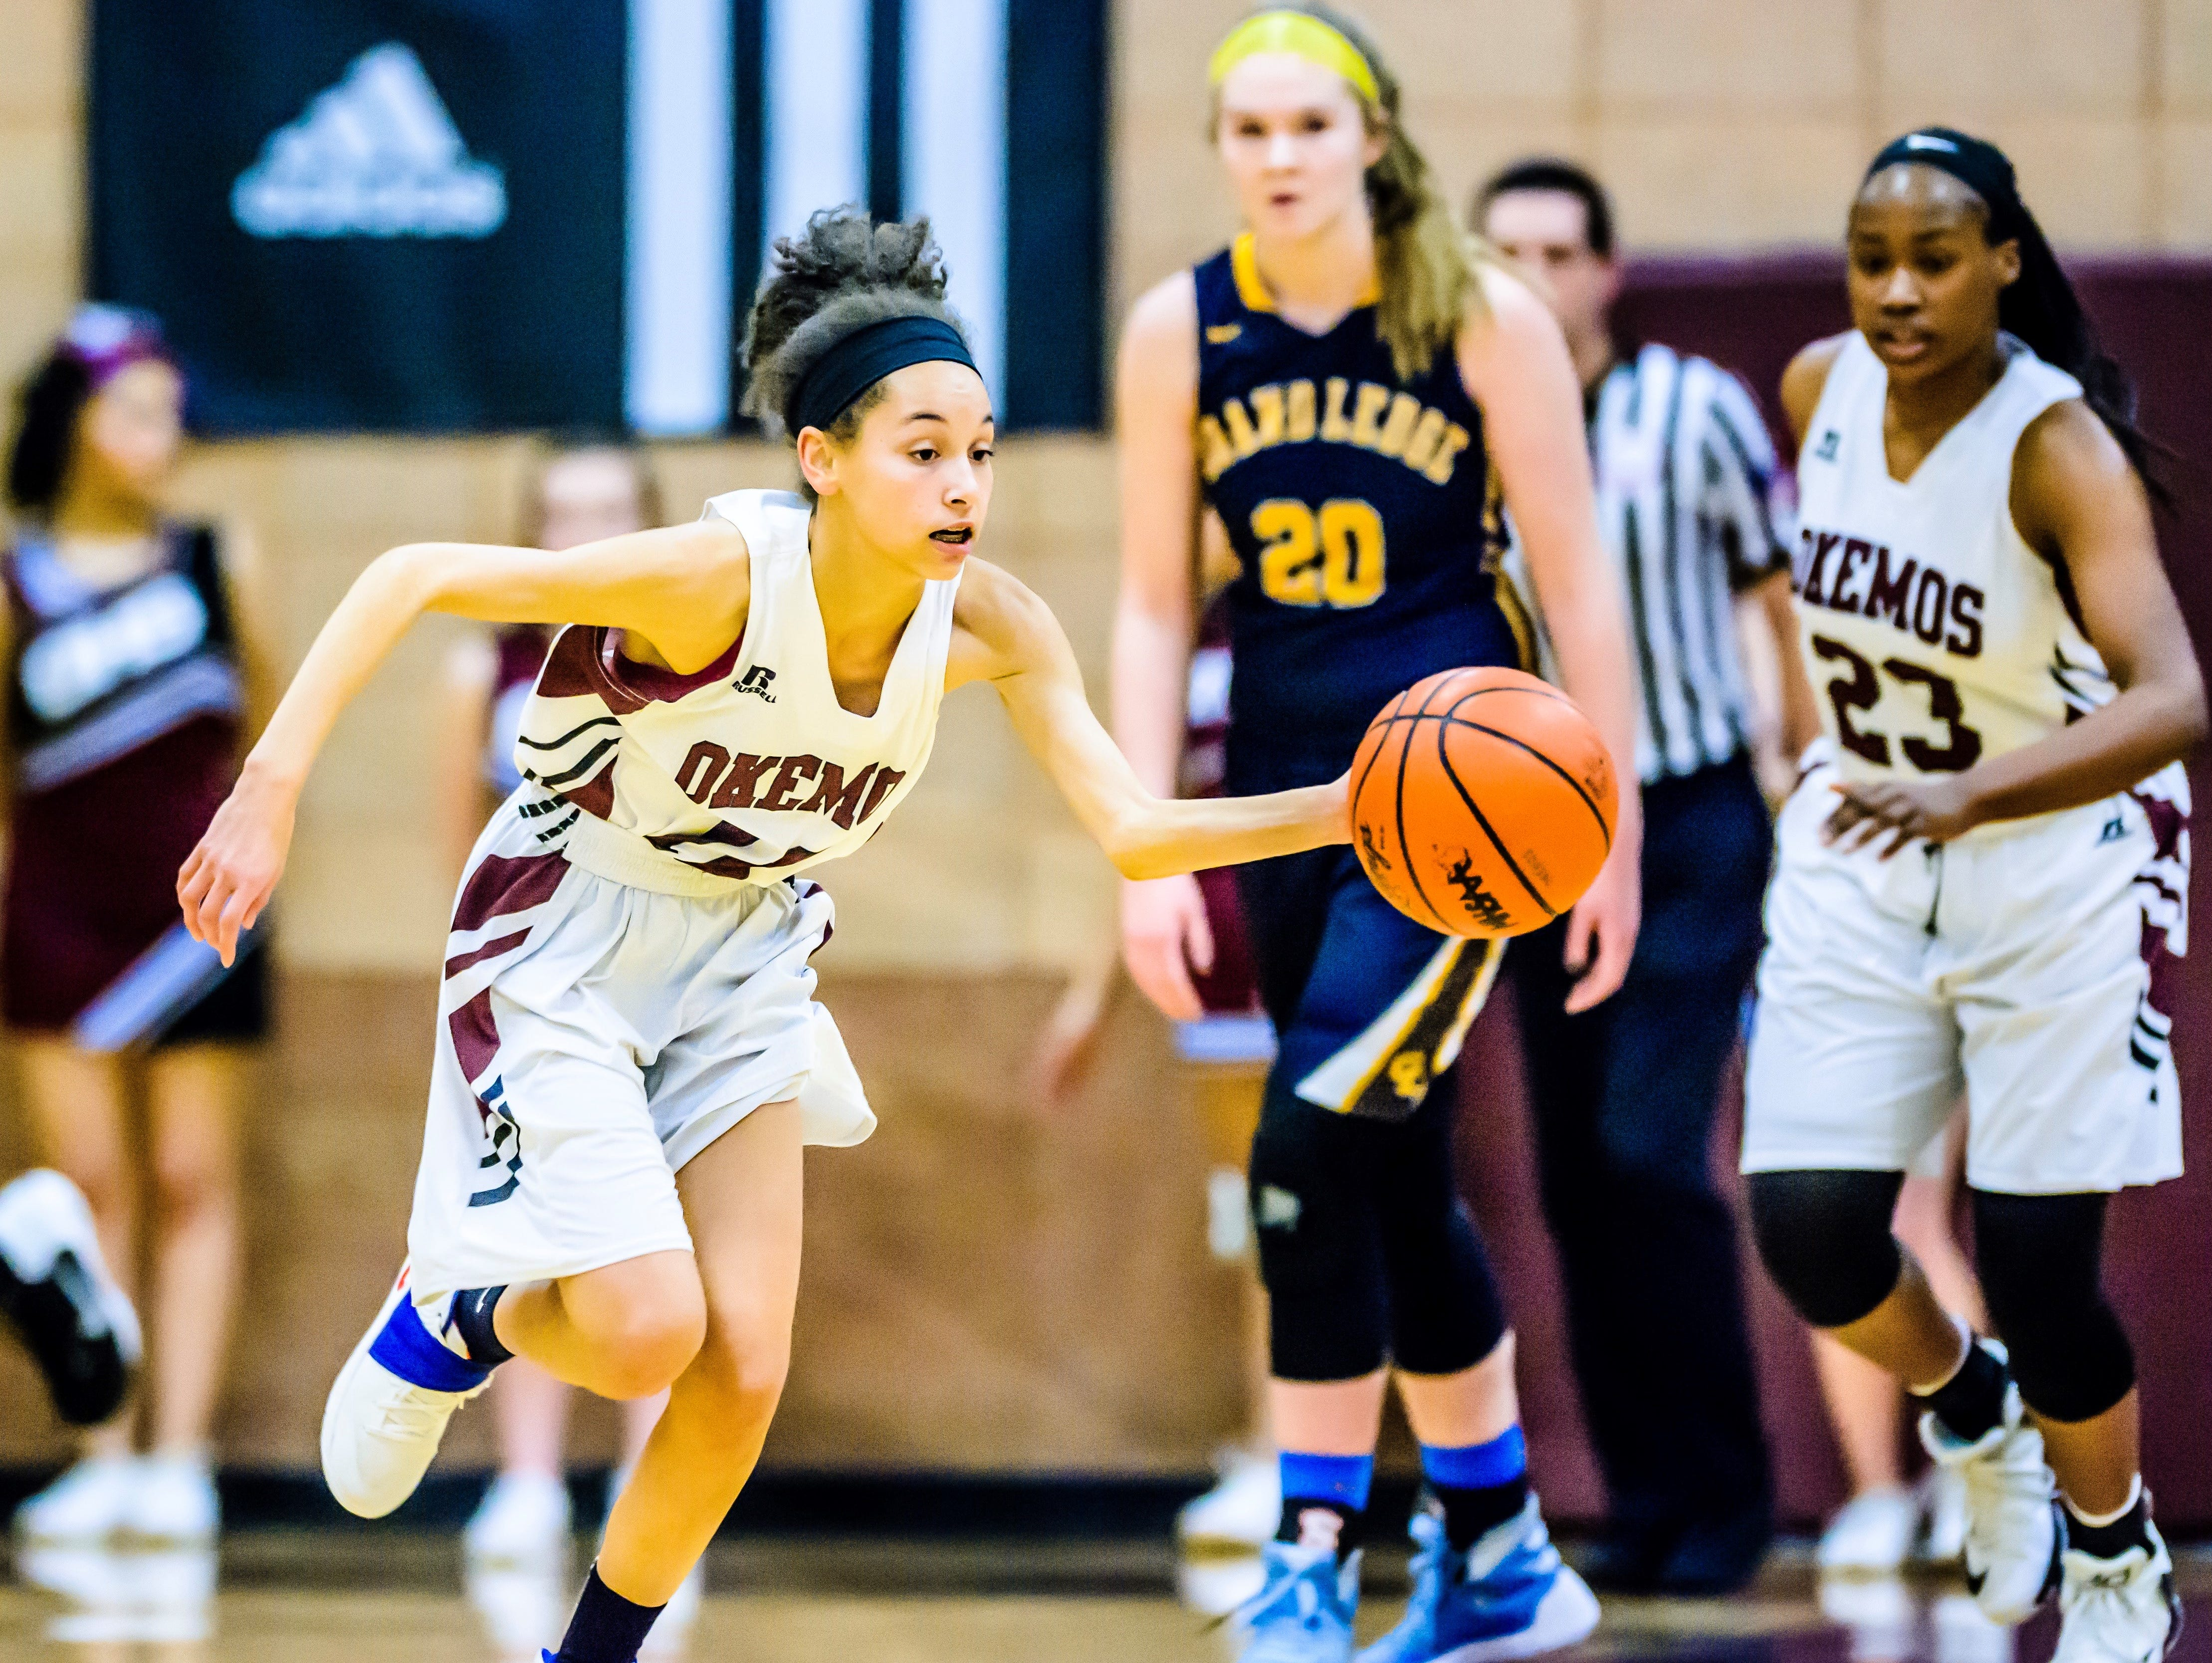 Kelsey Henry of Okemos pushes the ball to the Grand Ledge basket after stealing it during their game Friday February 3, 2017 in Okemos.